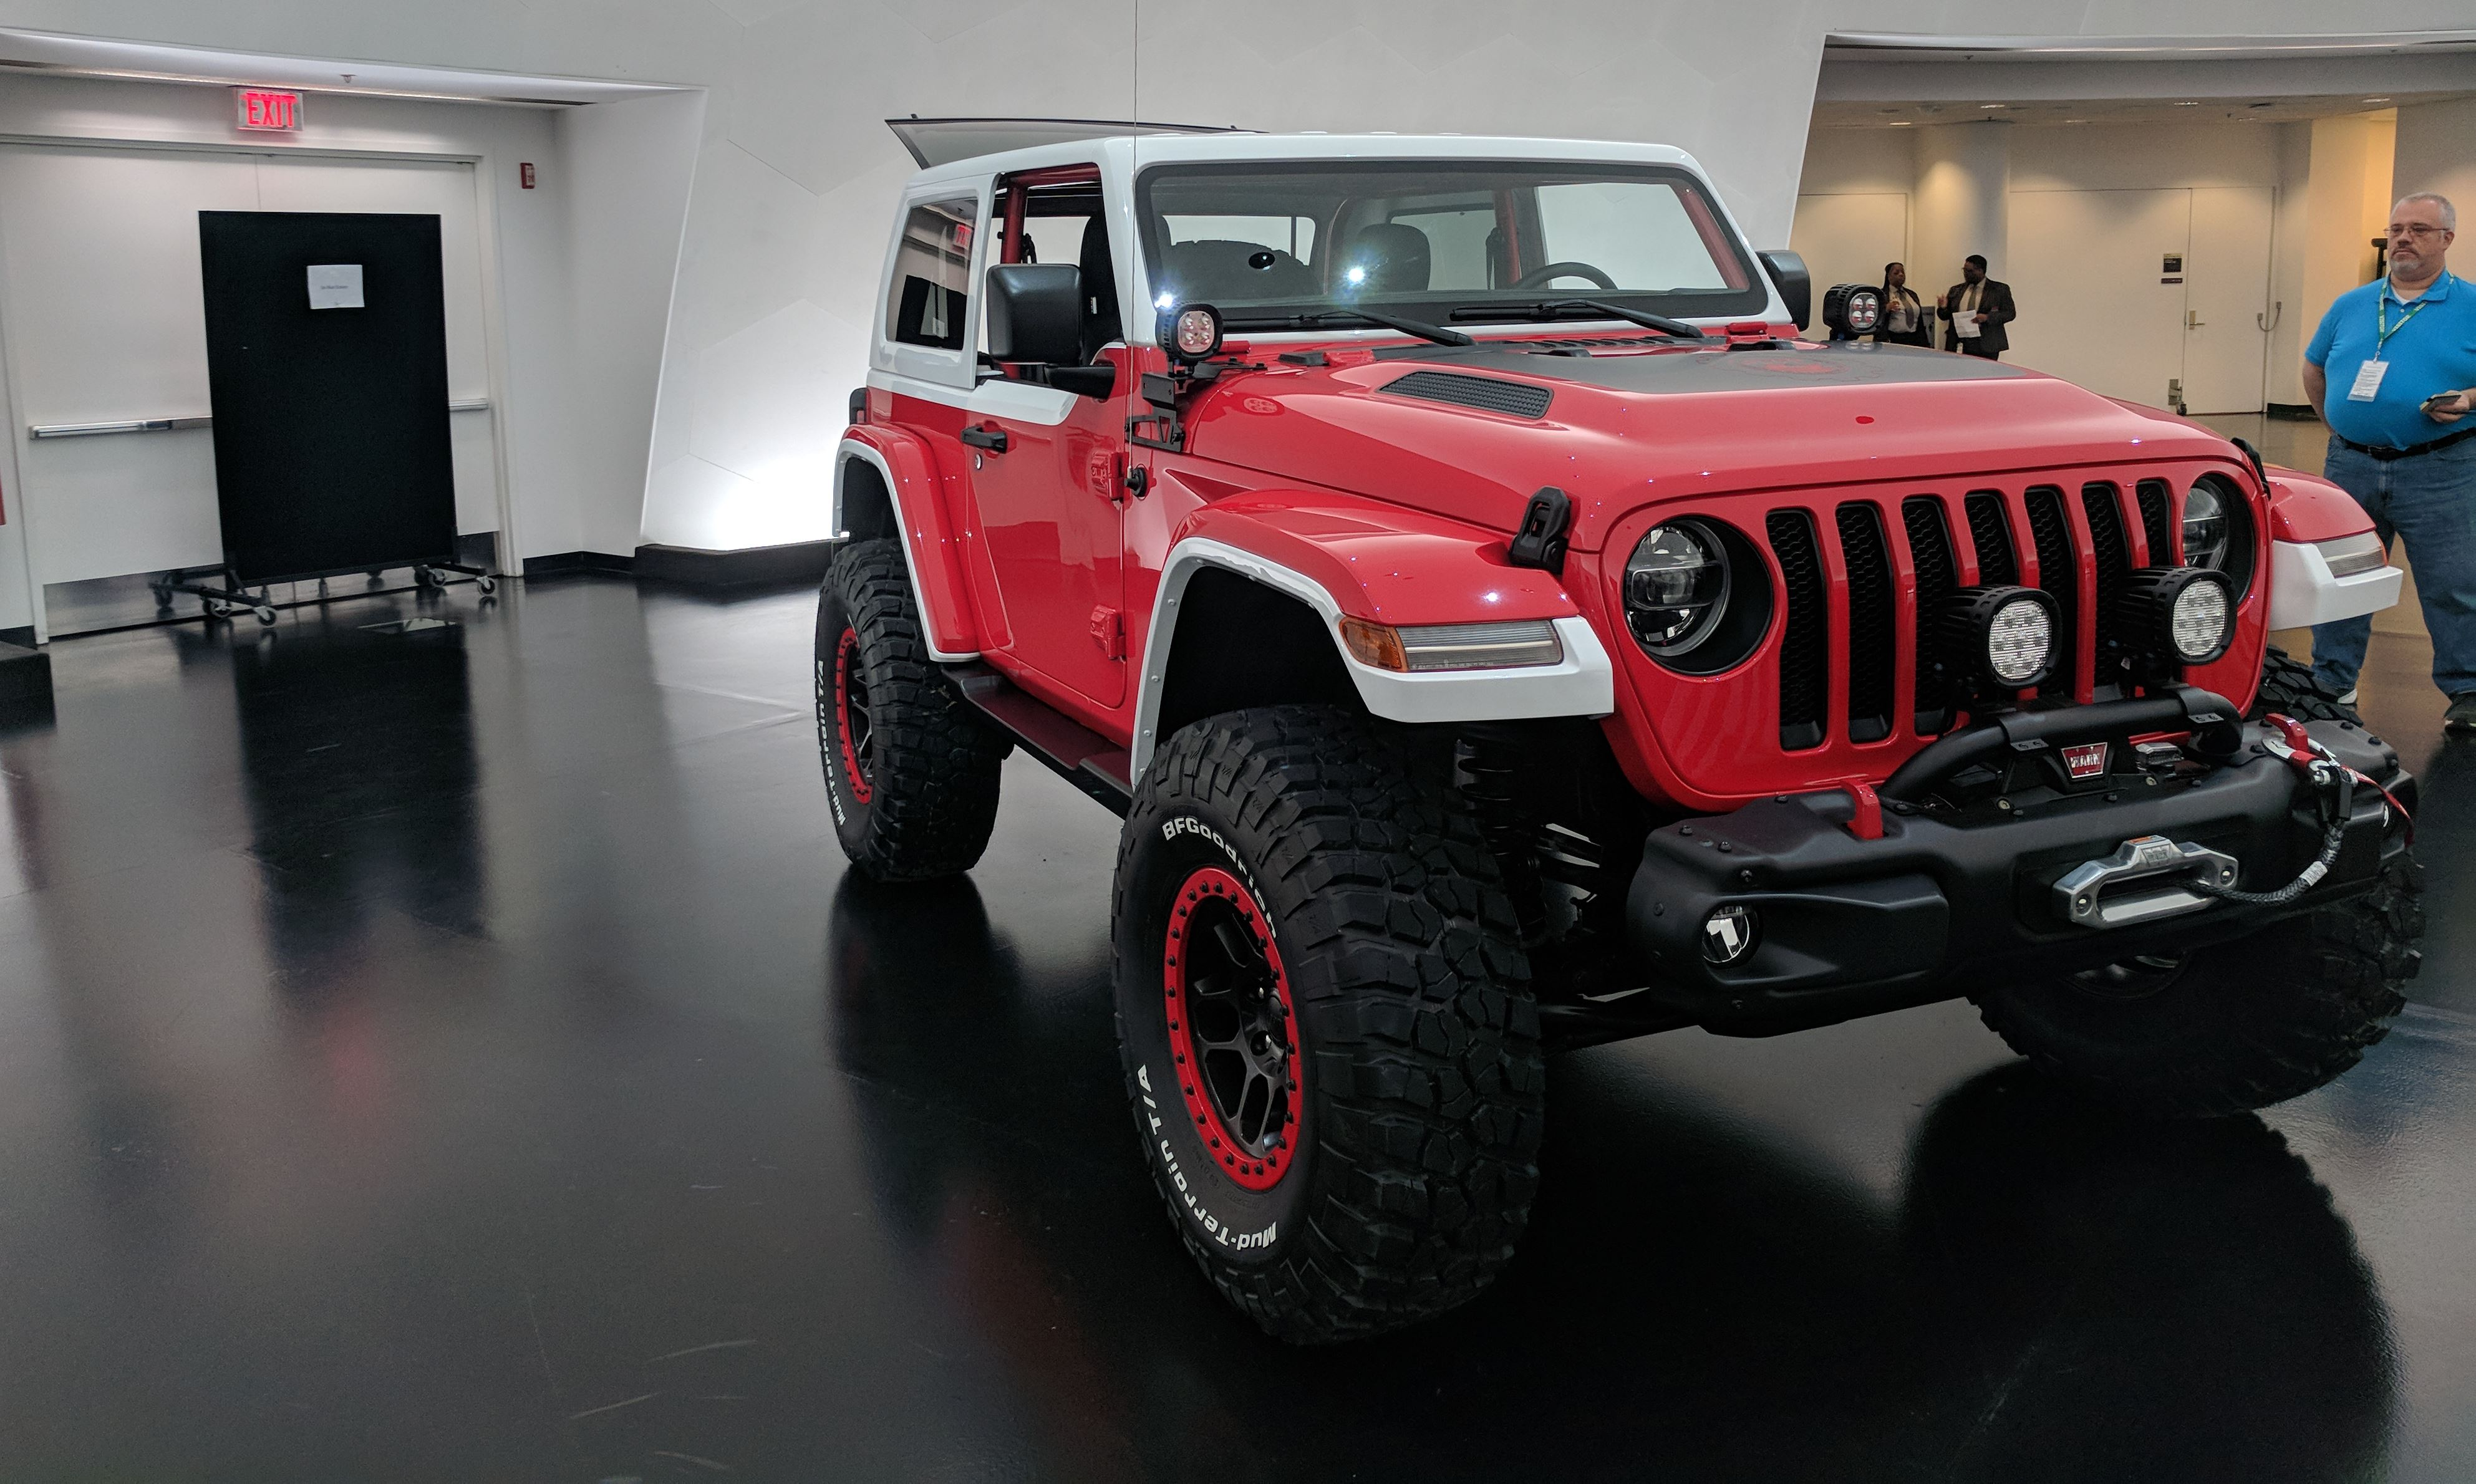 htm plaza unlimited vehicles fl chrysler ram inverness in dodge featured for wrangler new jeep sahara jk sale